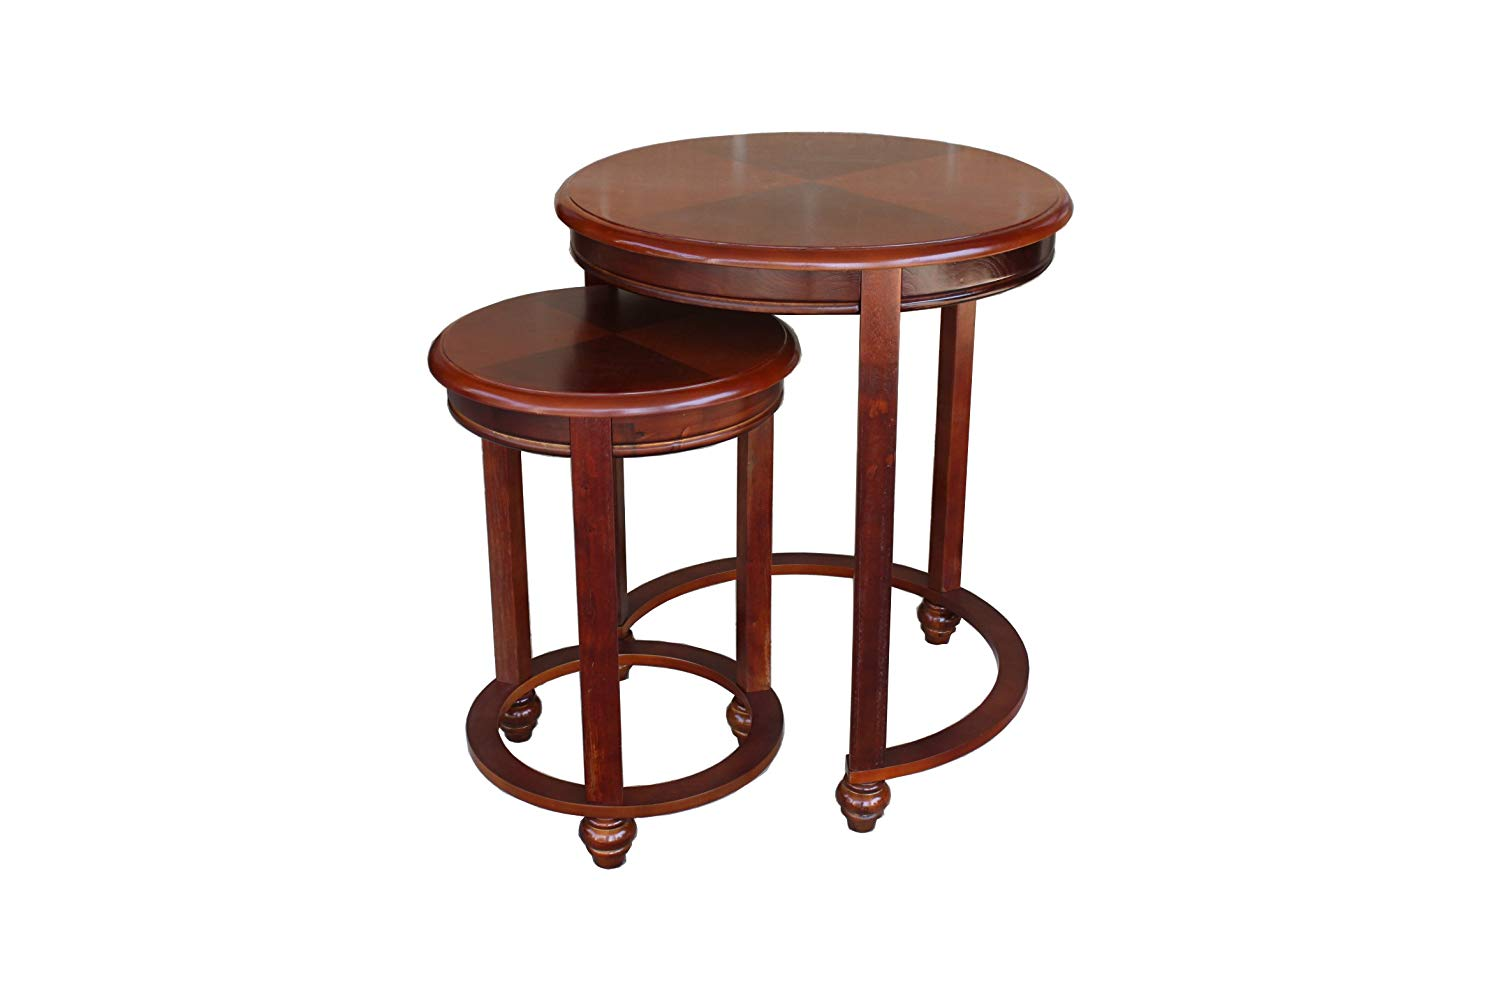 asheville light cherry round nested table set winsome wood cassie accent with glass top cappuccino finish kitchen dining blue end garden furniture chairs target vanity wine rack